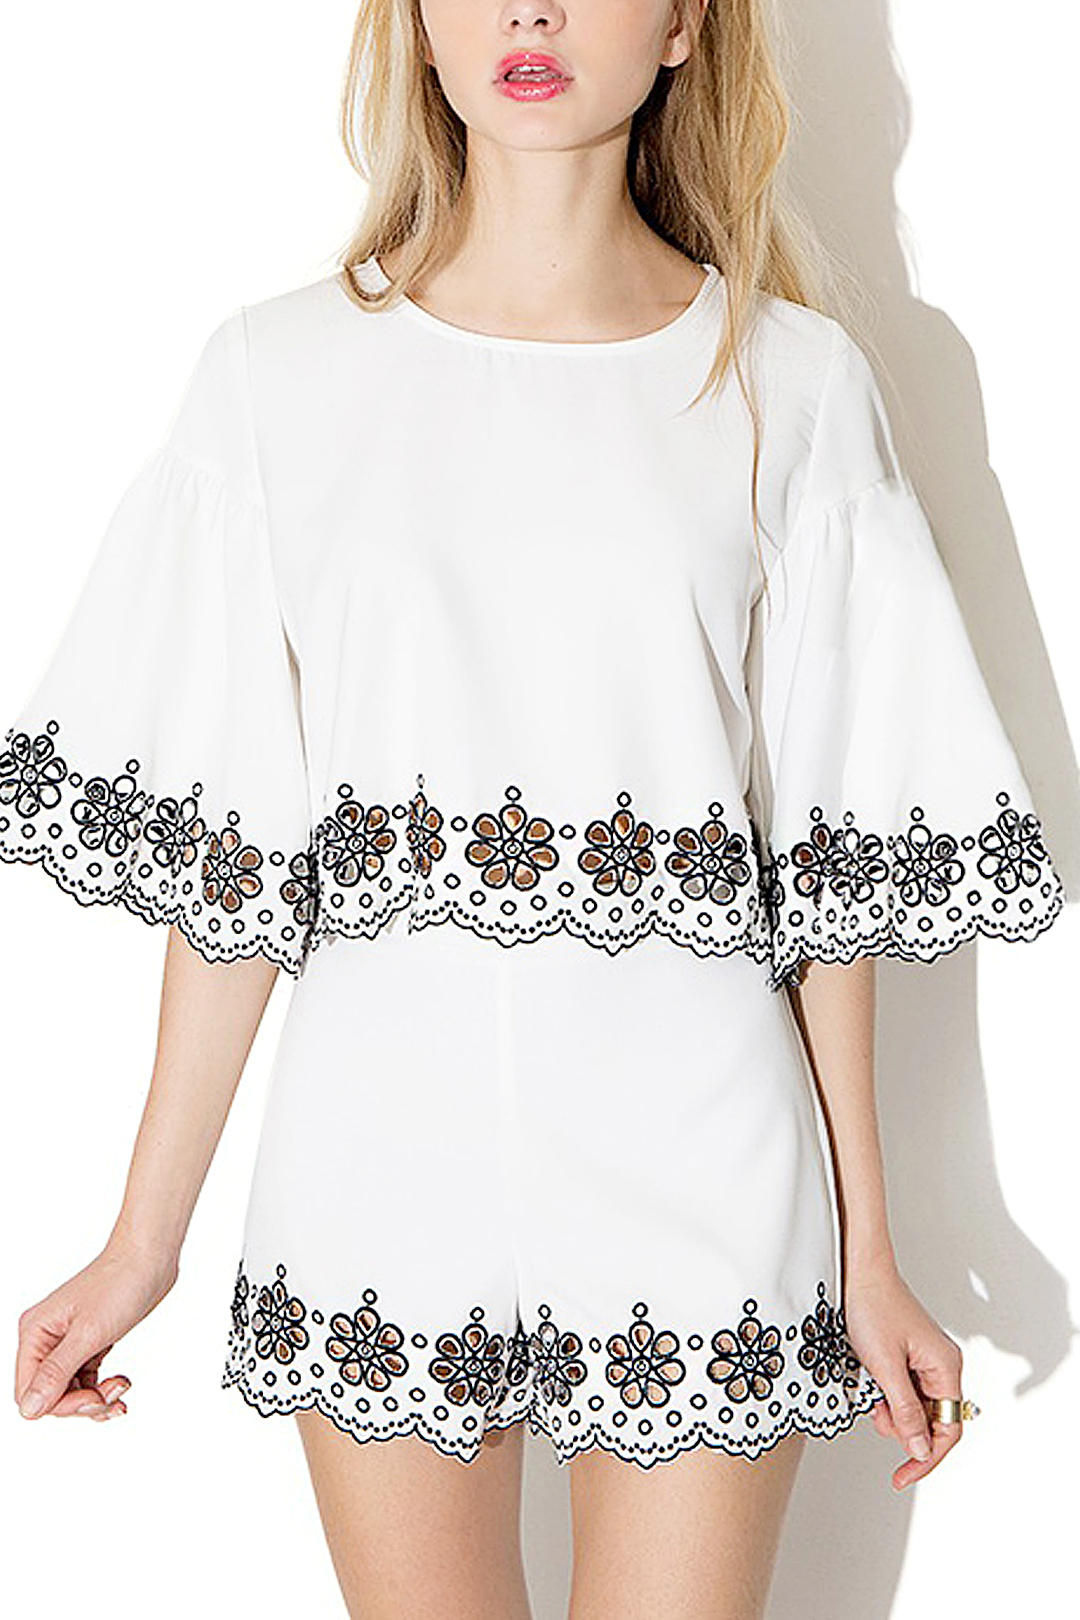 White High-rise Waist Embroidered Details Shorts